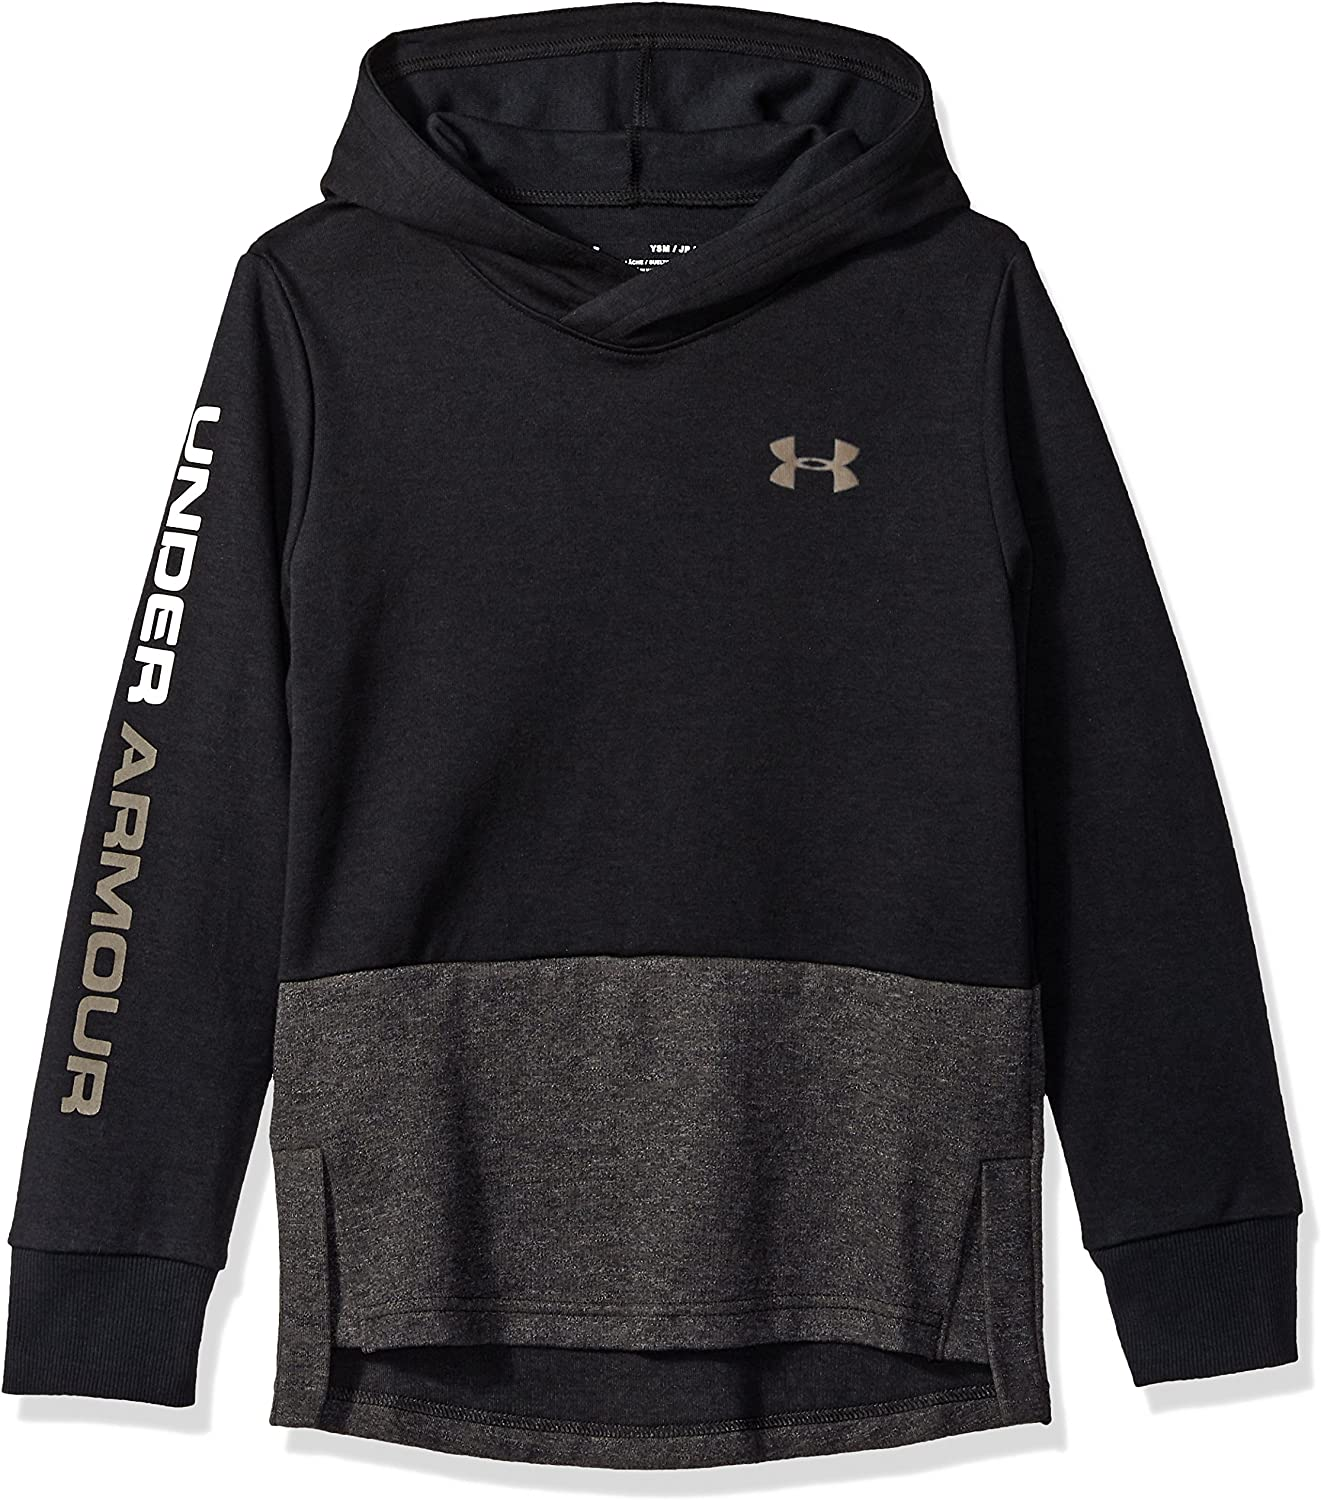 Youth Large //Fresh Clay 001 Under Armour Boys Double Knit Hoodie Black